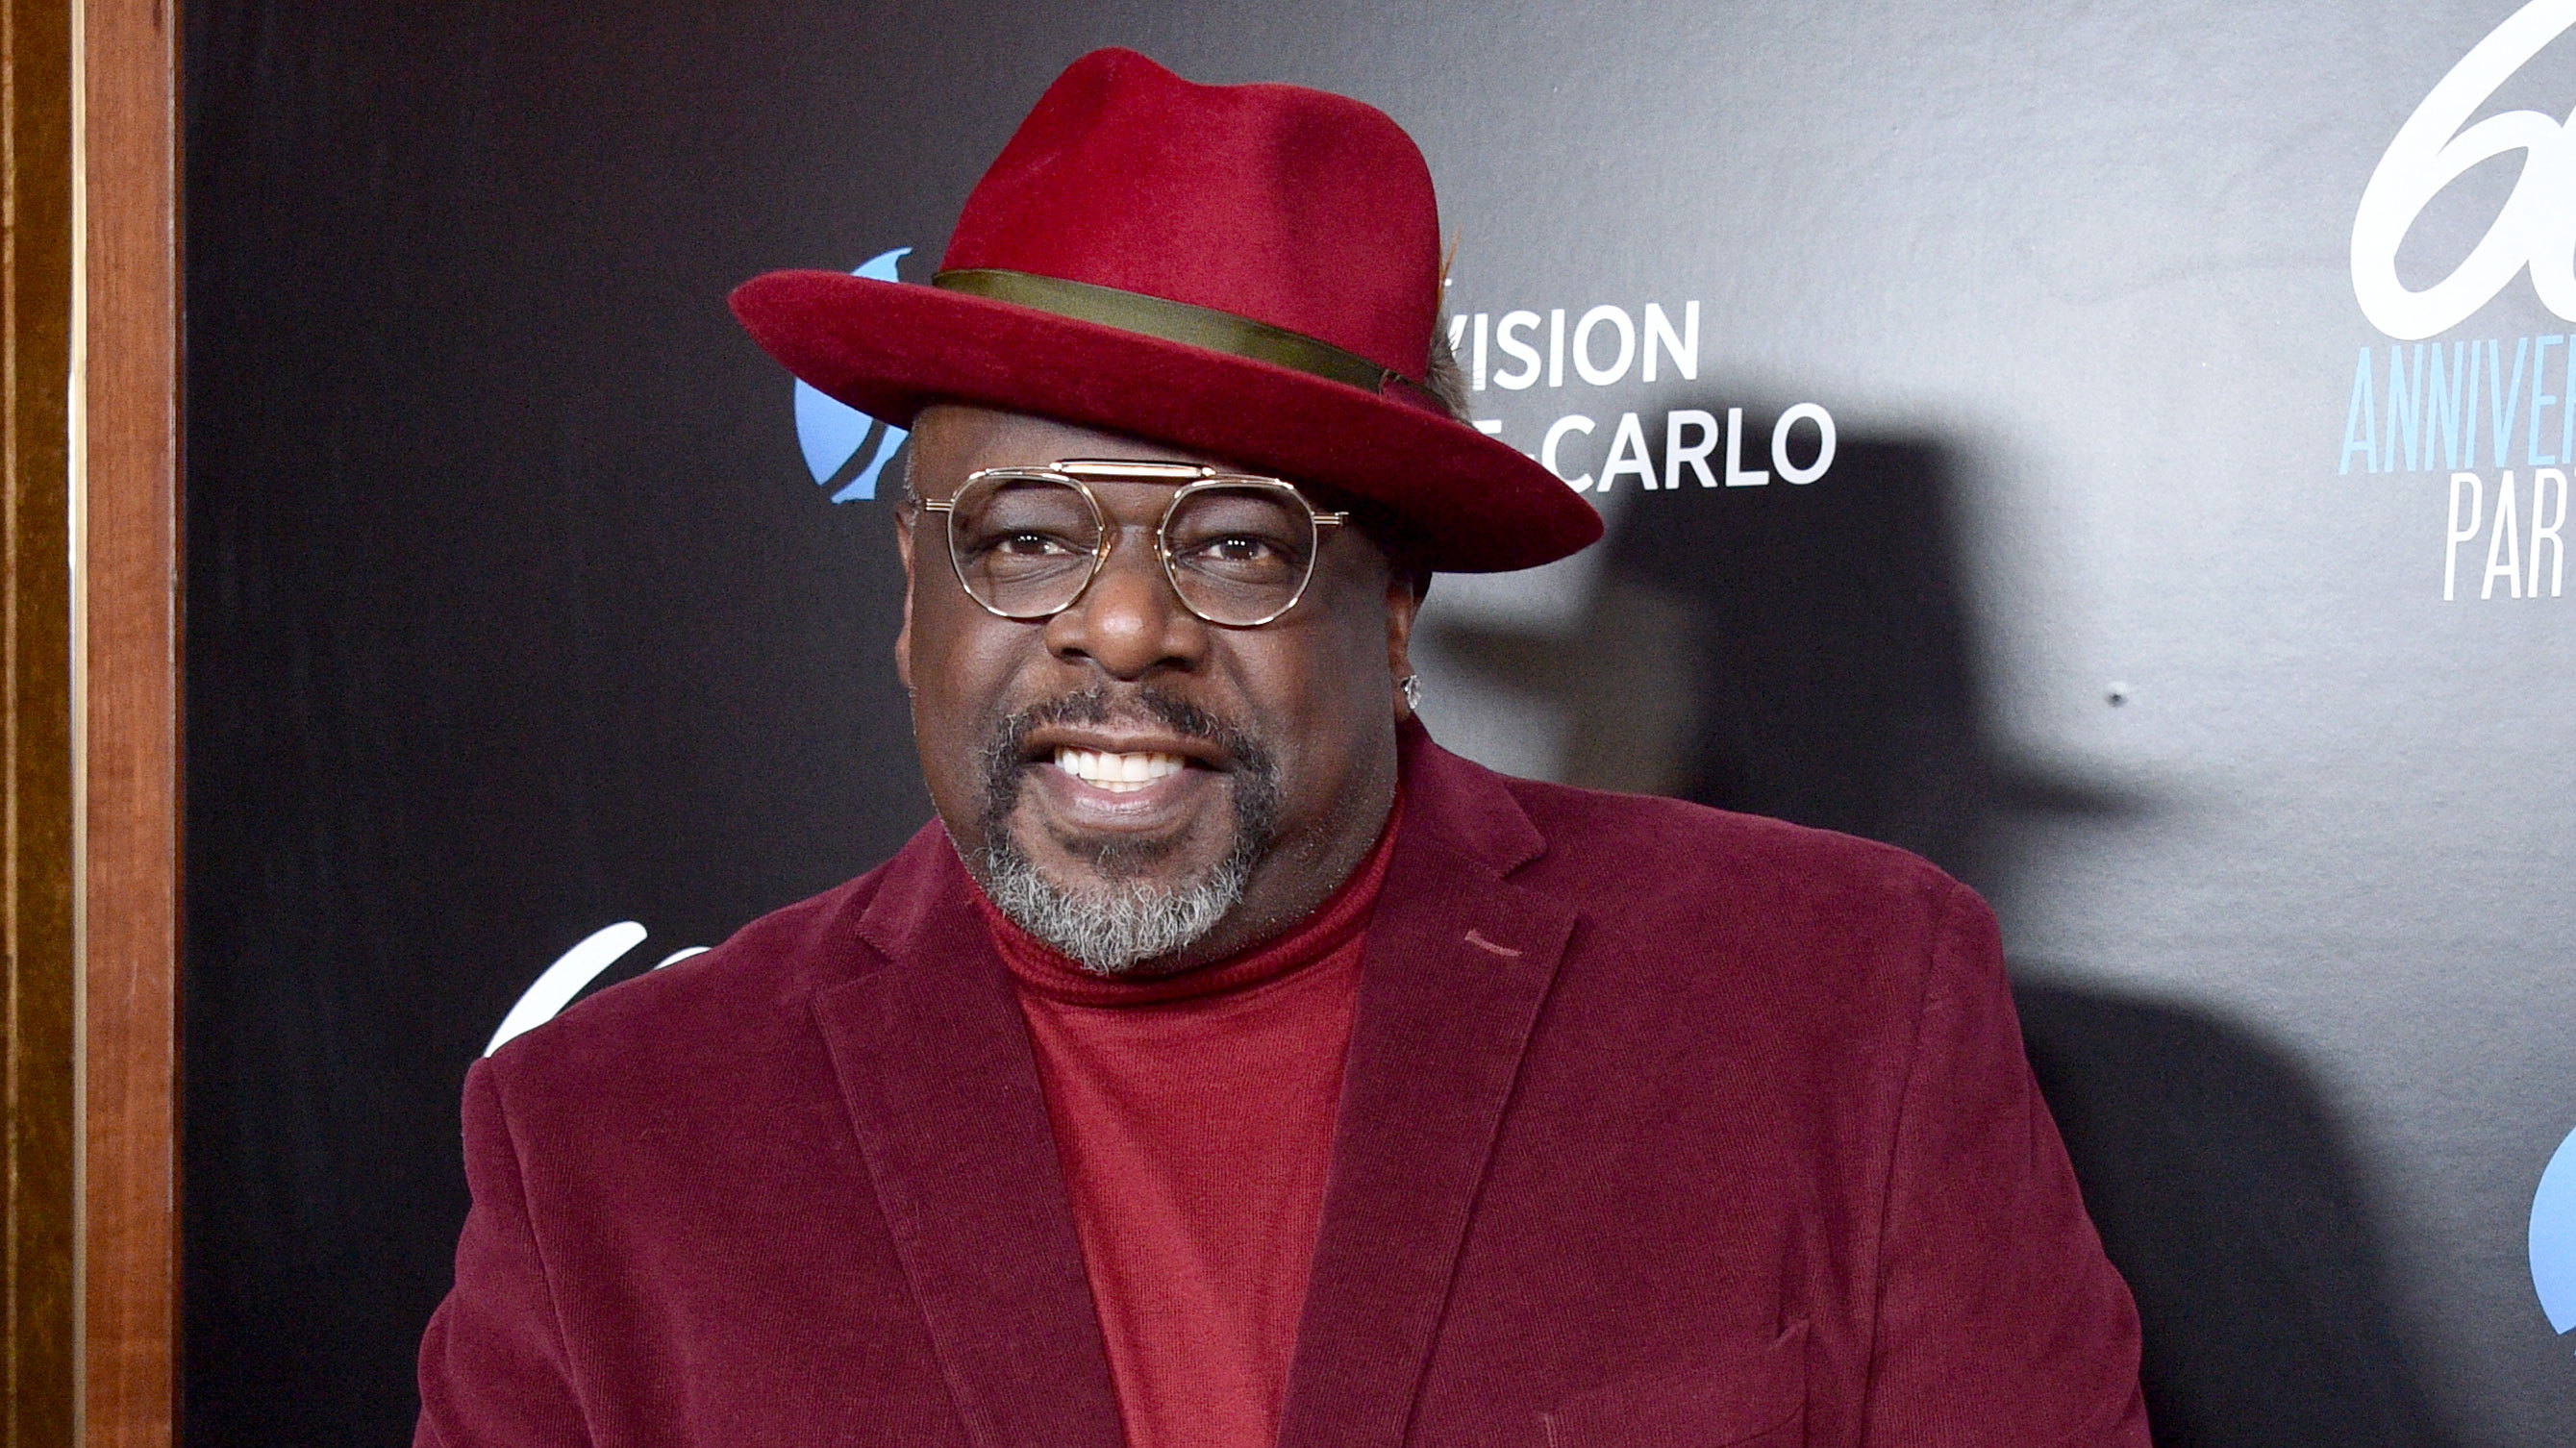 Cedric the Entertainer attends an event in West Hollywood, California, in 2020.